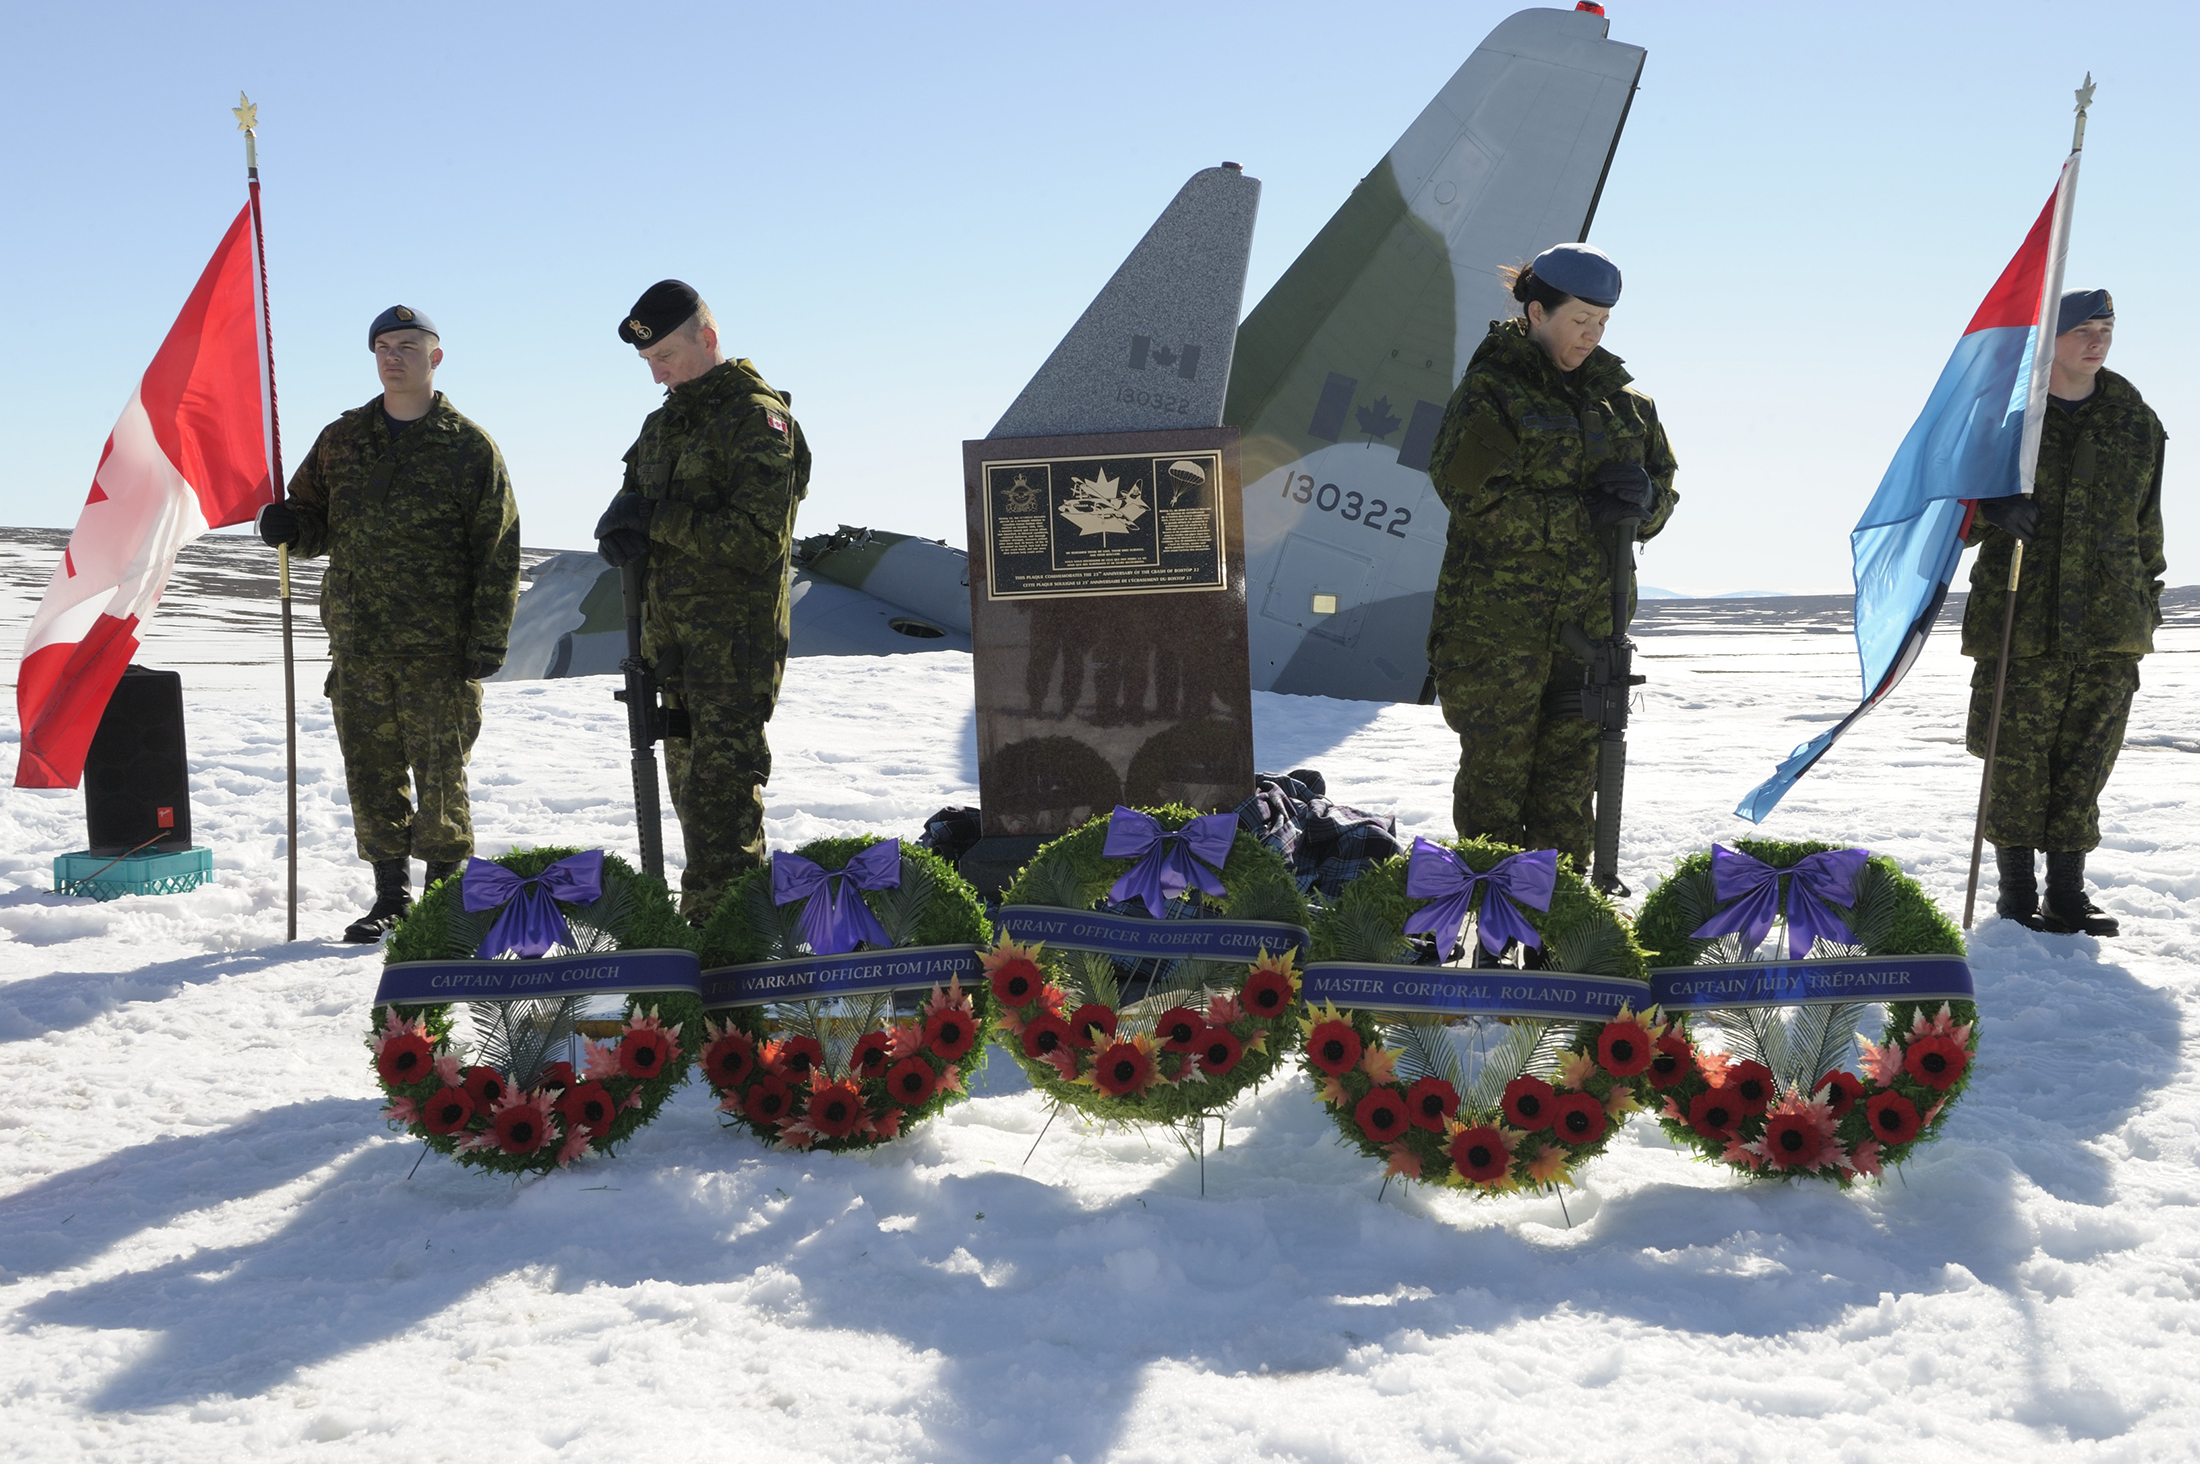 Corporal Brett Guitard (left), Leading Seaman Garnet Robinson, Corporal Yvette Cedeno and Aviator Alain Fortier serve as sentries at the memorial cairn during its dedication.